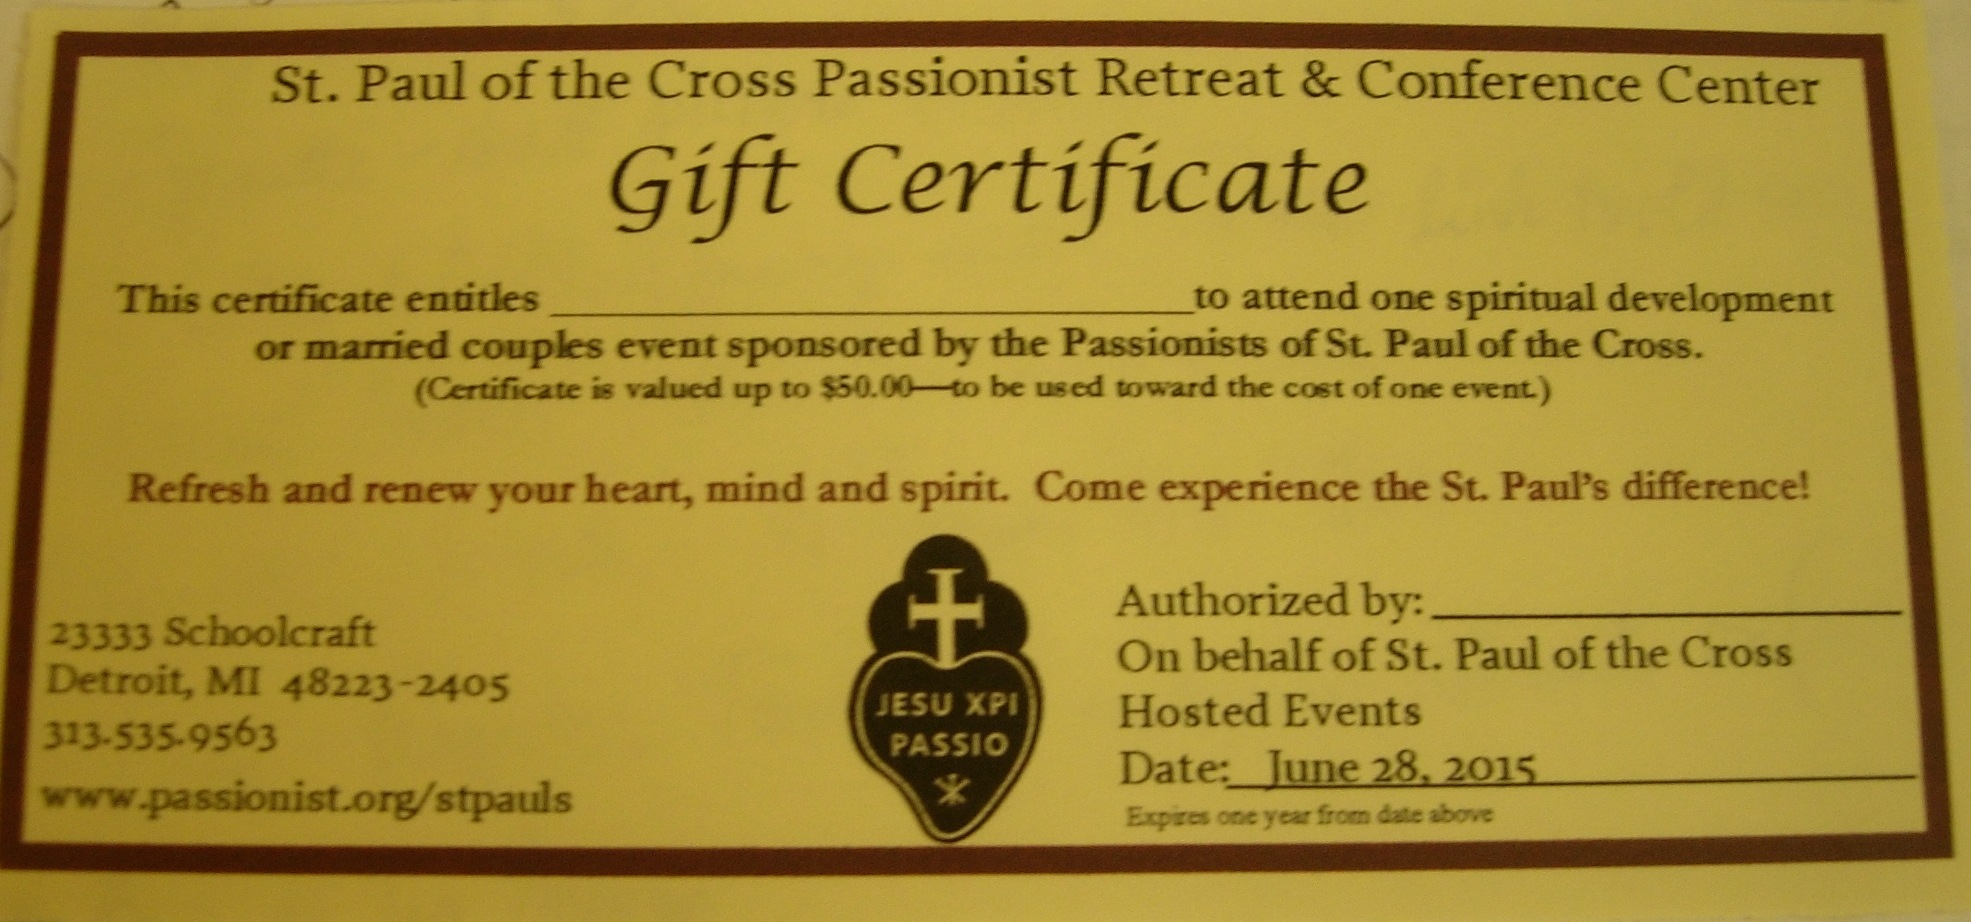 gift certificate st paul of the cross newsletter